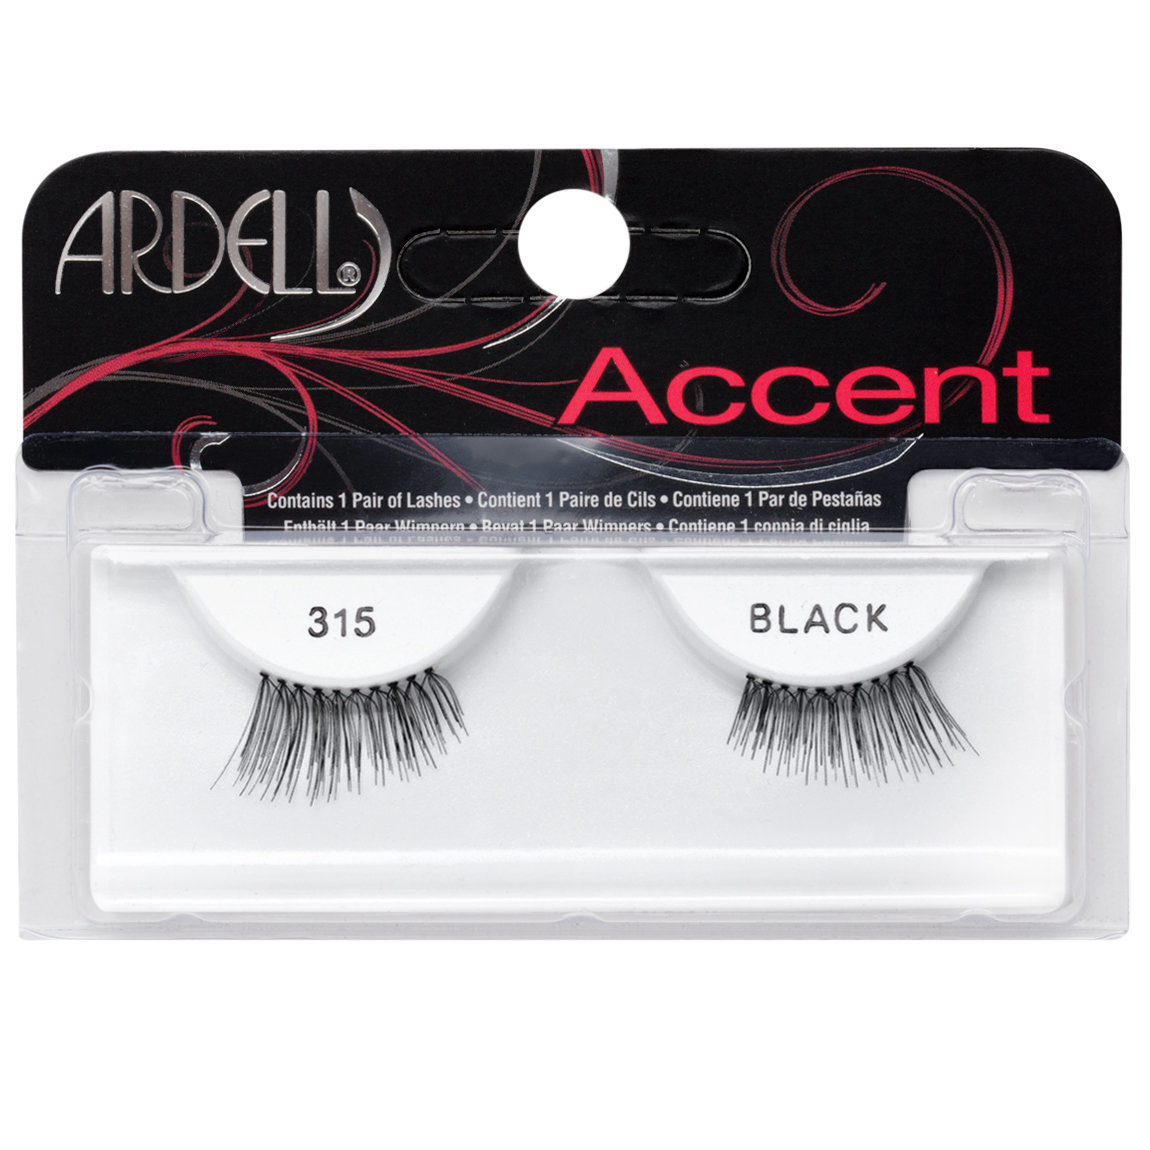 Ardell Accent Lashes 315 Black